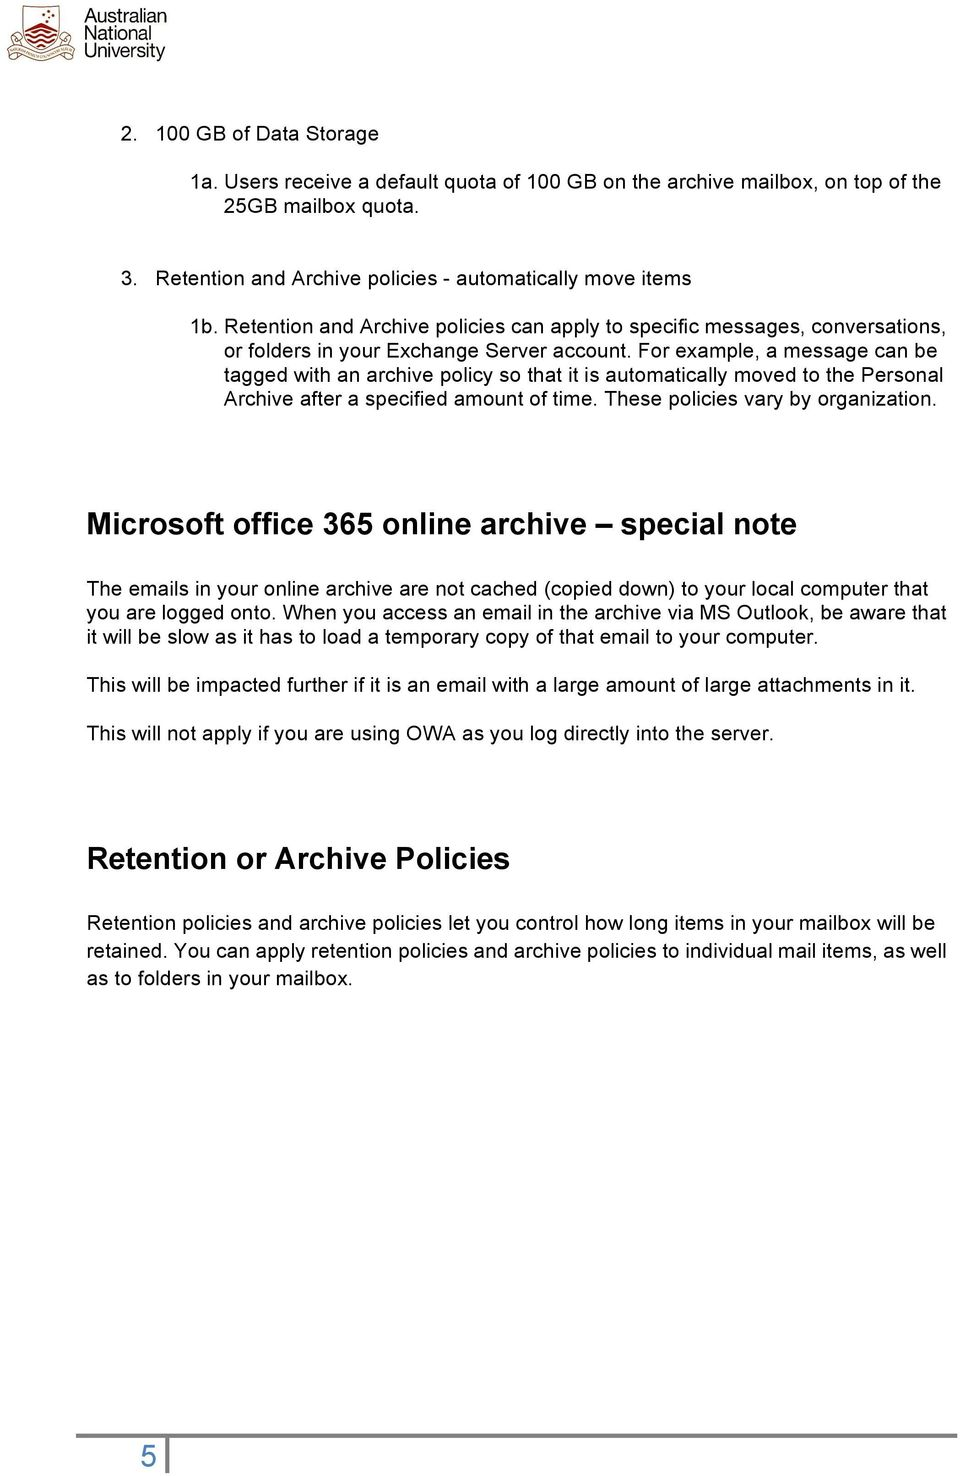 For example, a message can be tagged with an archive policy so that it is automatically moved to the Personal Archive after a specified amount of time. These policies vary by organization.